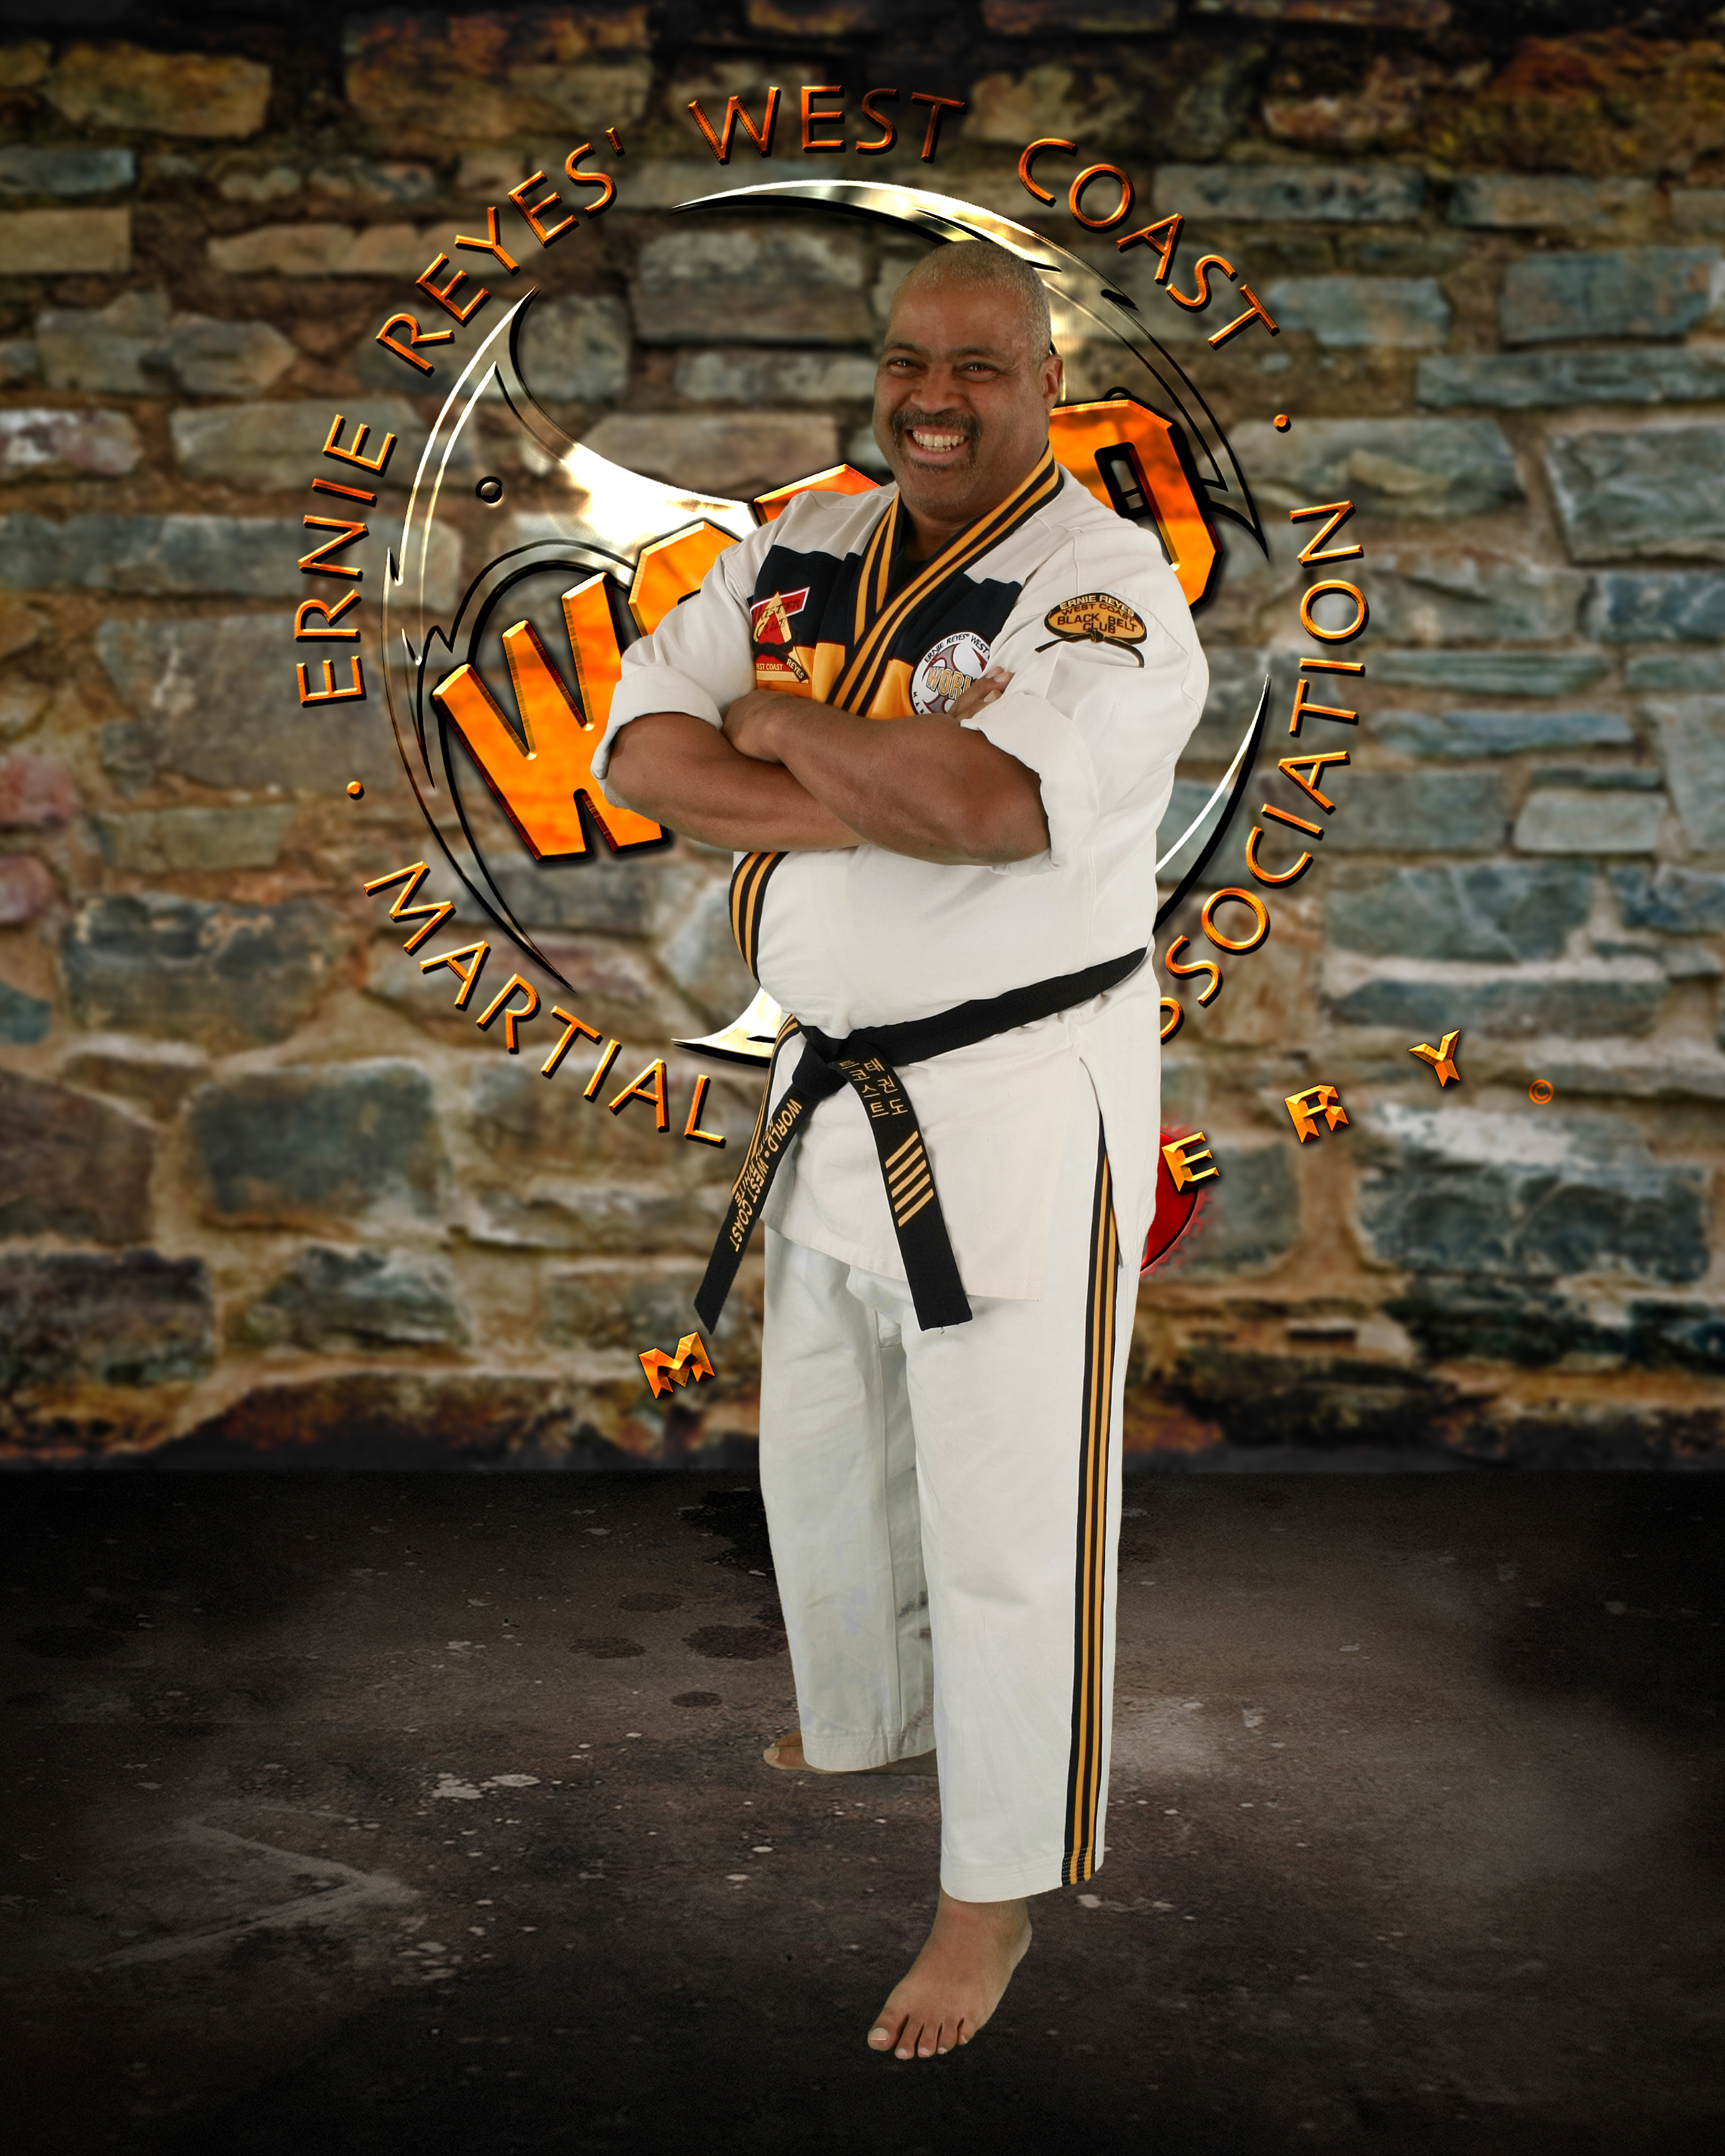 KJN Keith White - KJN Keith has been with the West Coast World Martial Arts Association for over 17 years. He also has experience in Tae Kwon Do, Shotokan, Jiu Jitsu, Krav Maga, and the combat art of Lynxx.KJN Keith teaches adult only classes on Monday and Wednesday evenings 645-730pm.